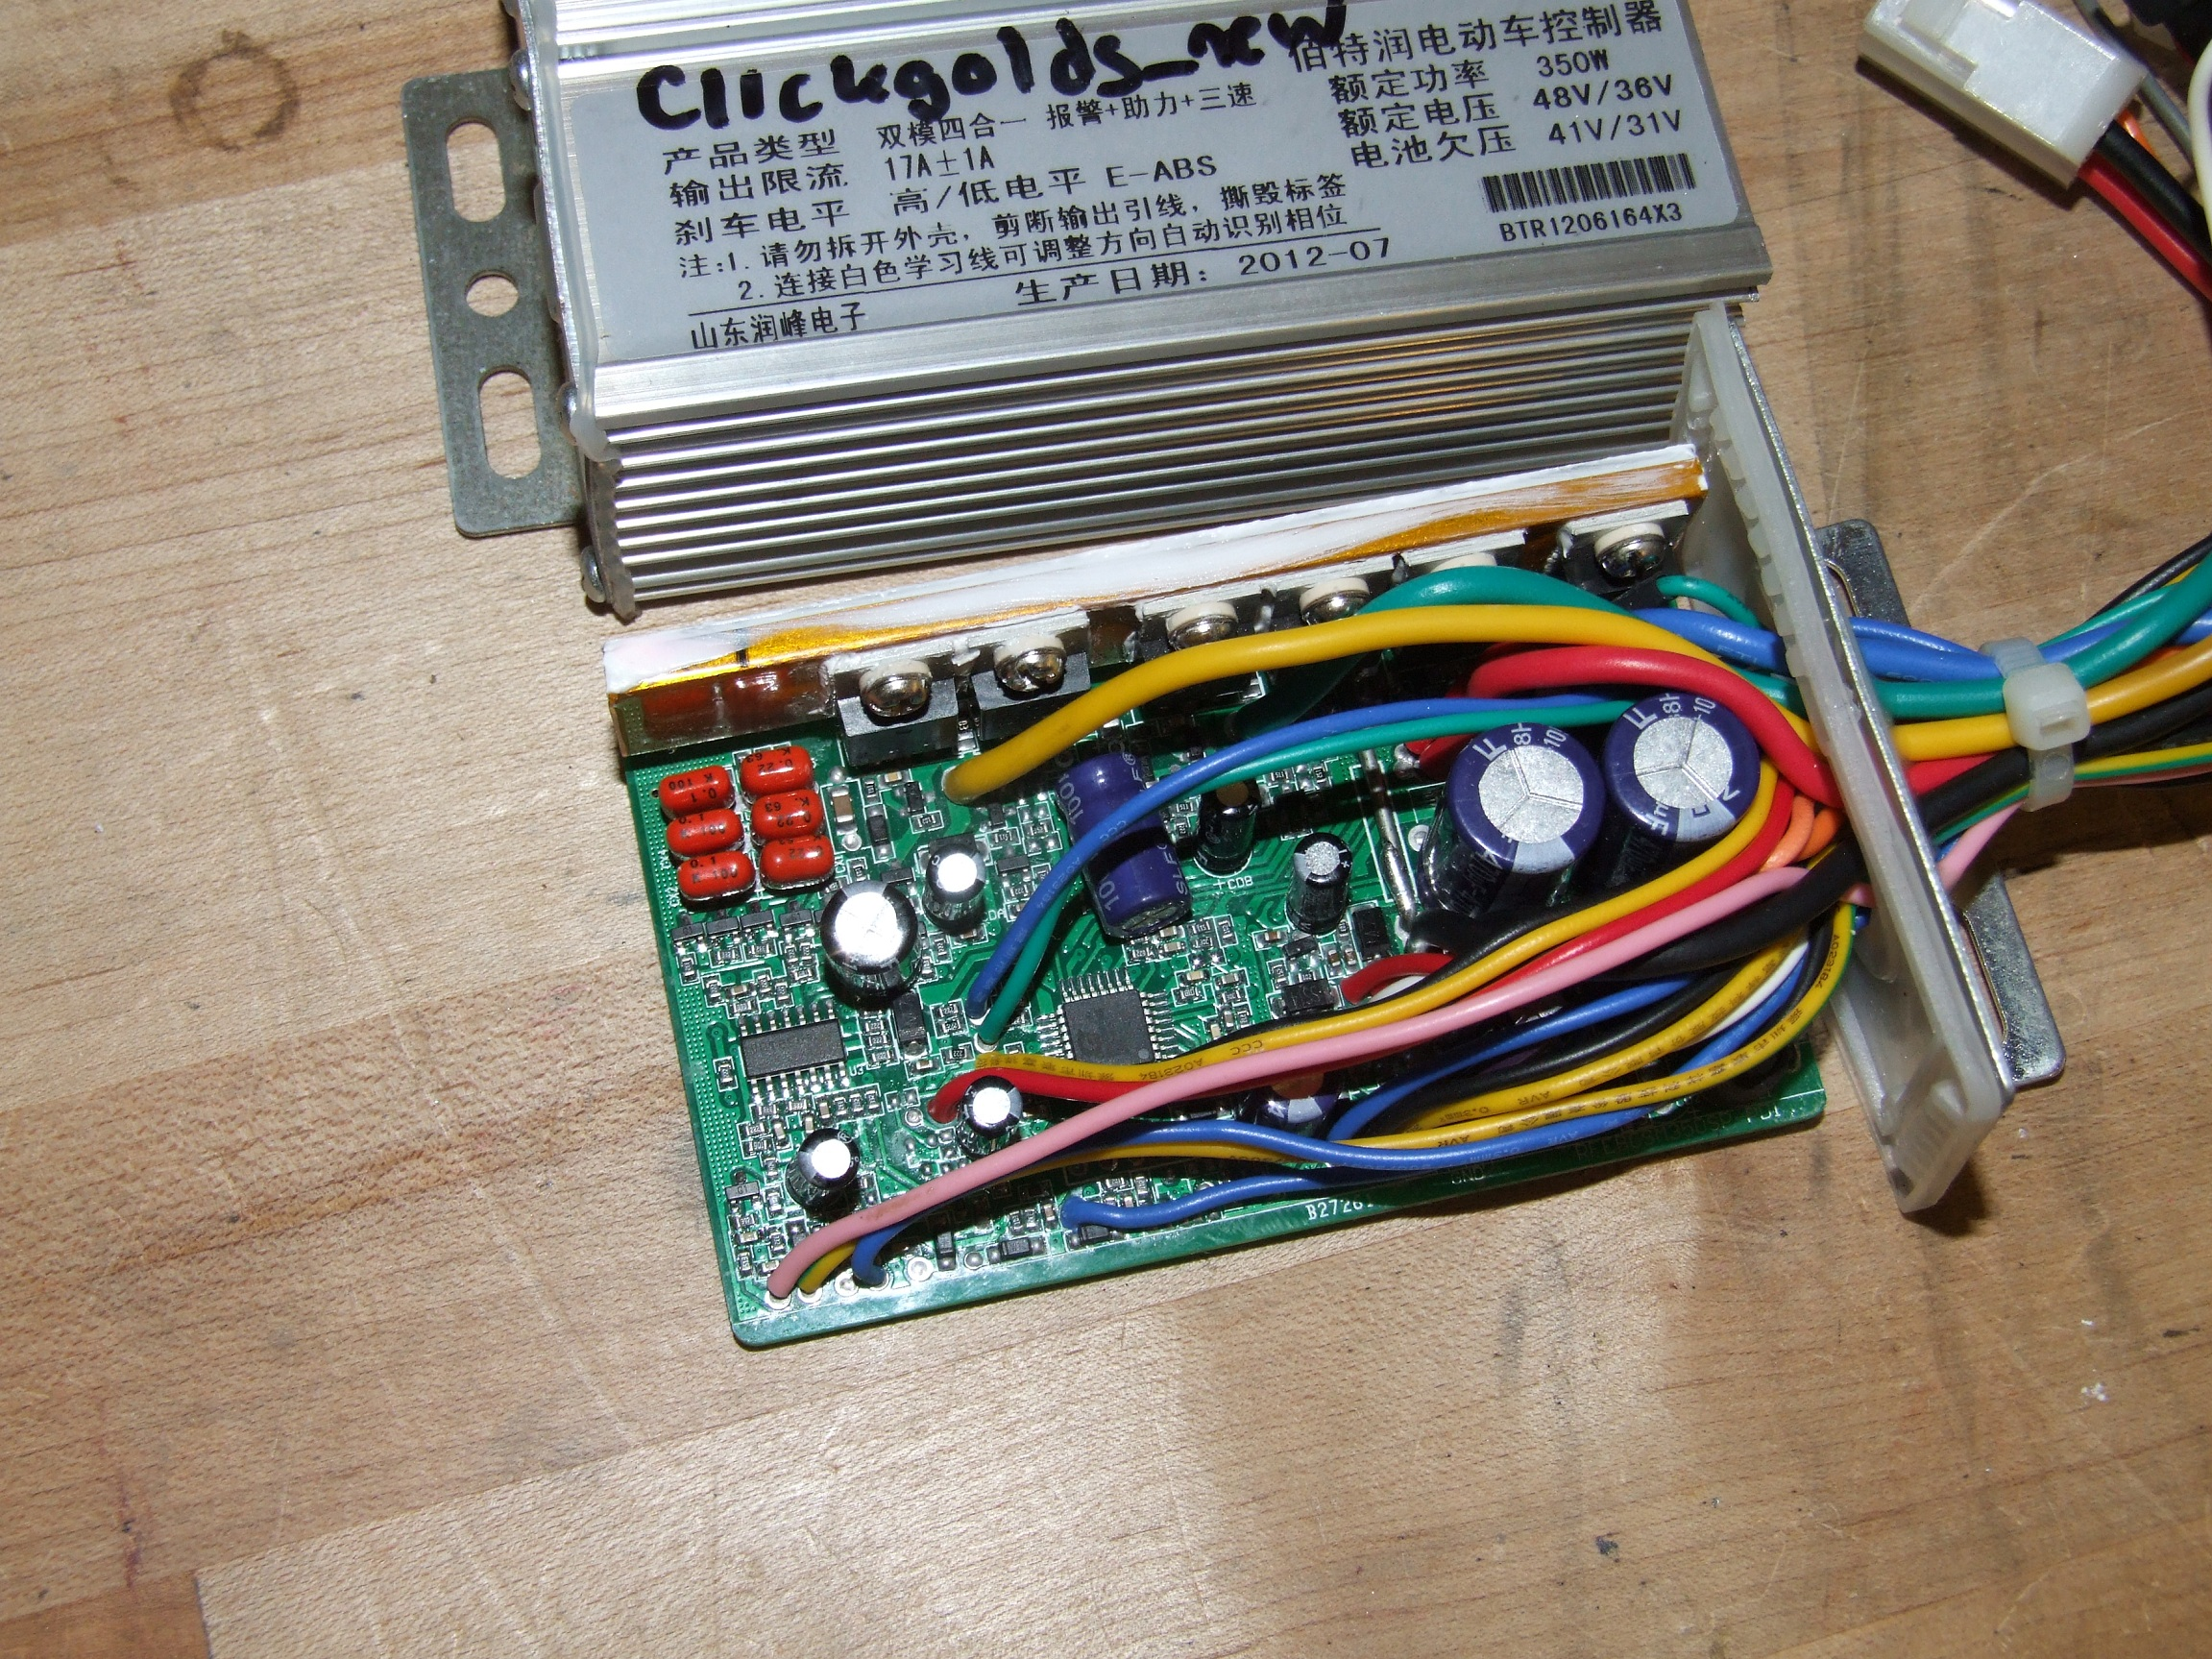 Beyond Unboxing Sensorless Chinese E Bike Controller Roundup Simple Miniature Motor By Lm317 Electronic Projects A Long Time Was Spent Staring At The 6 Random Little Capacitors Where Regulator